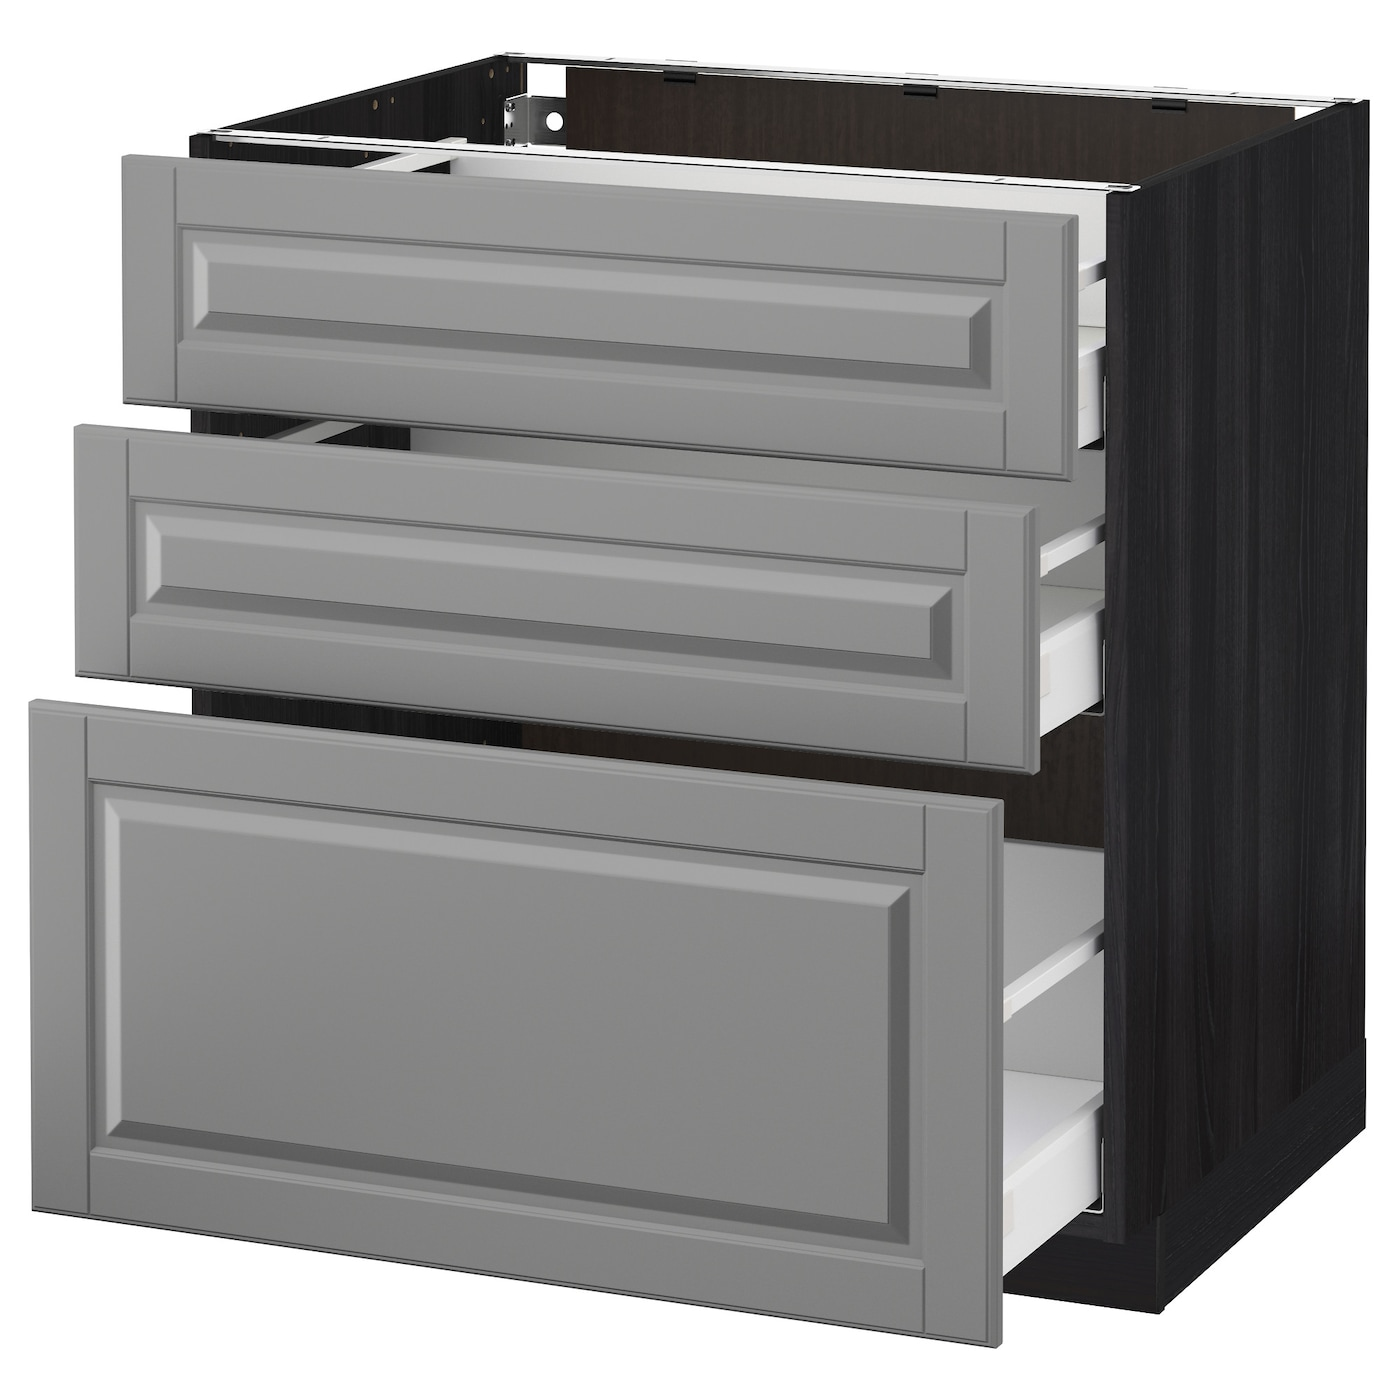 metod maximera base cabinet with 3 drawers black bodbyn grey 80 x 60 cm ikea. Black Bedroom Furniture Sets. Home Design Ideas